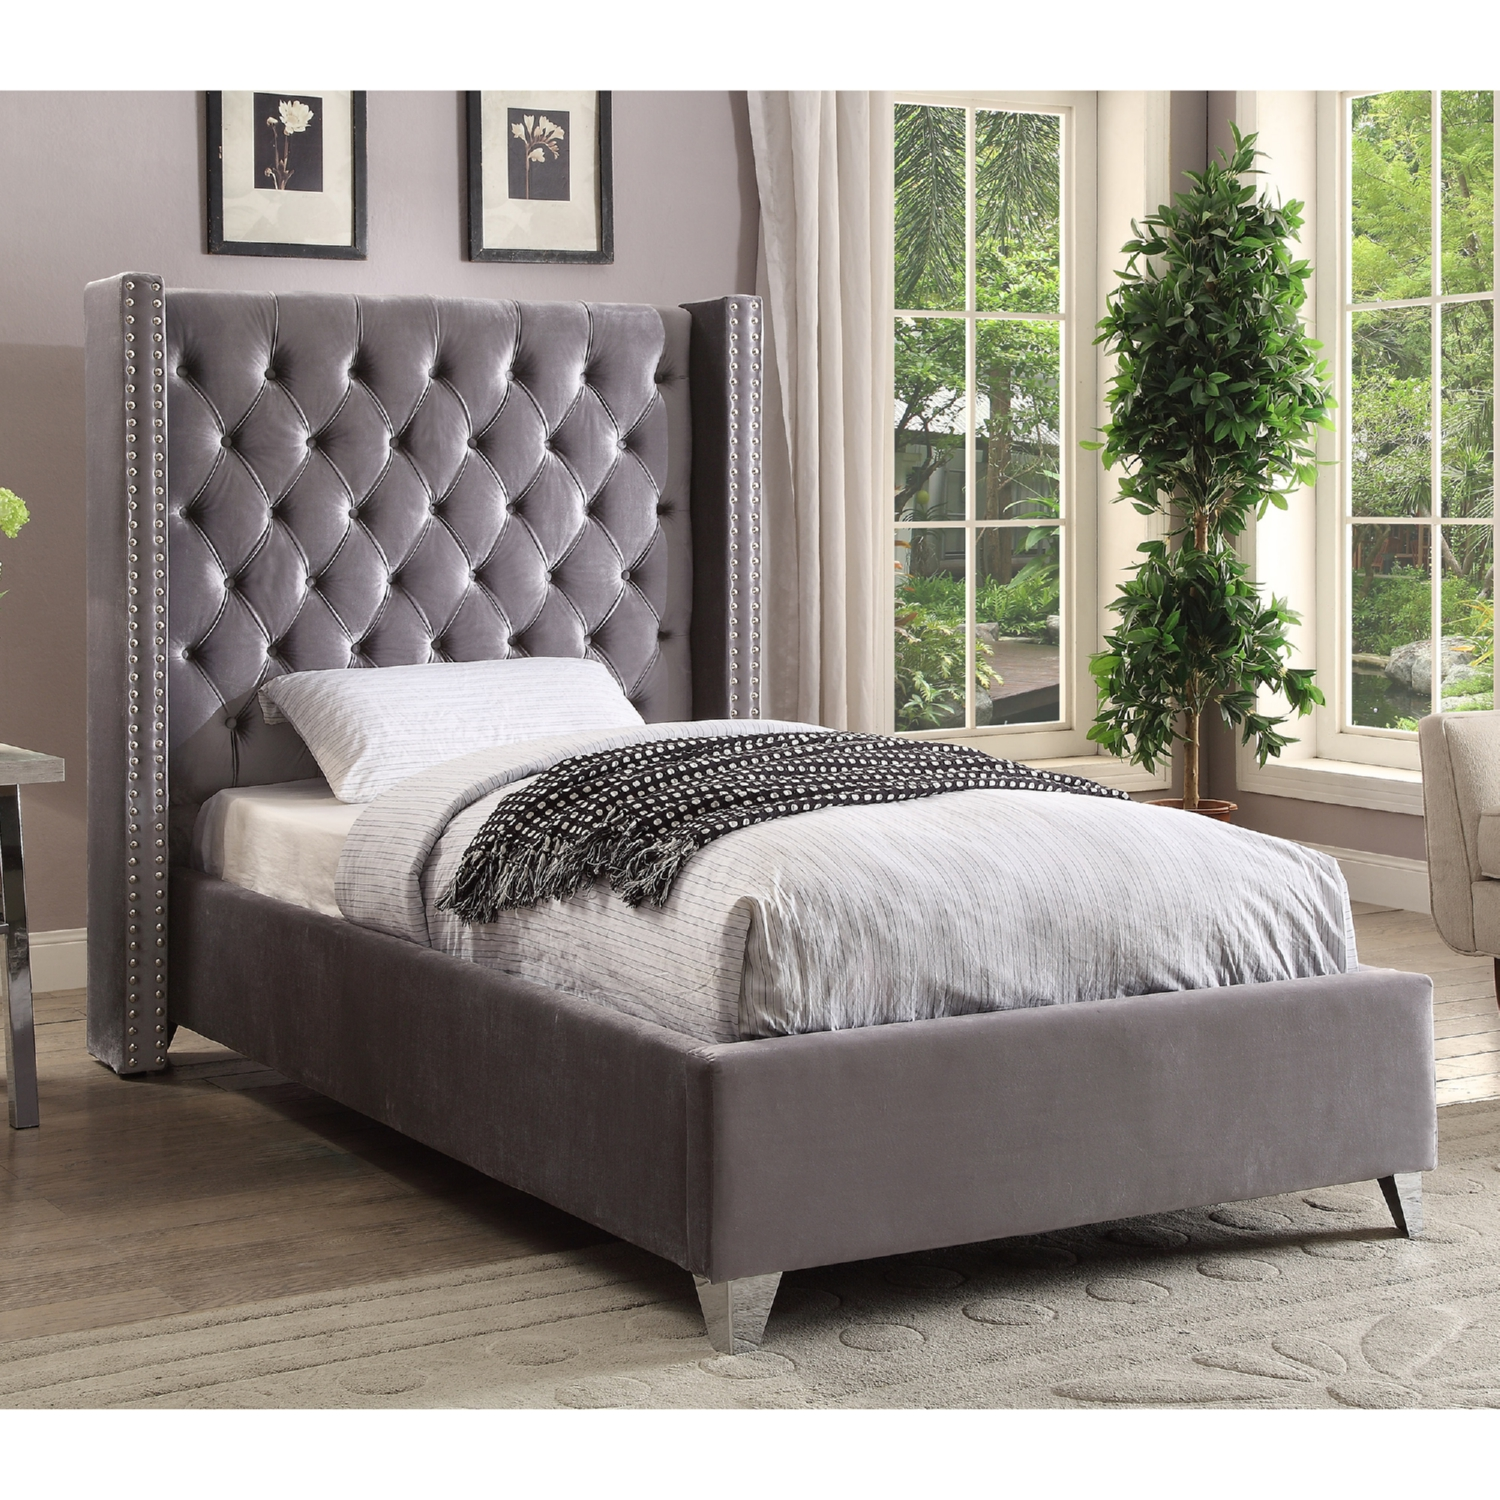 velvet grey tufted sofa free pick up uk meridian furniture aidengrey-t aiden ...